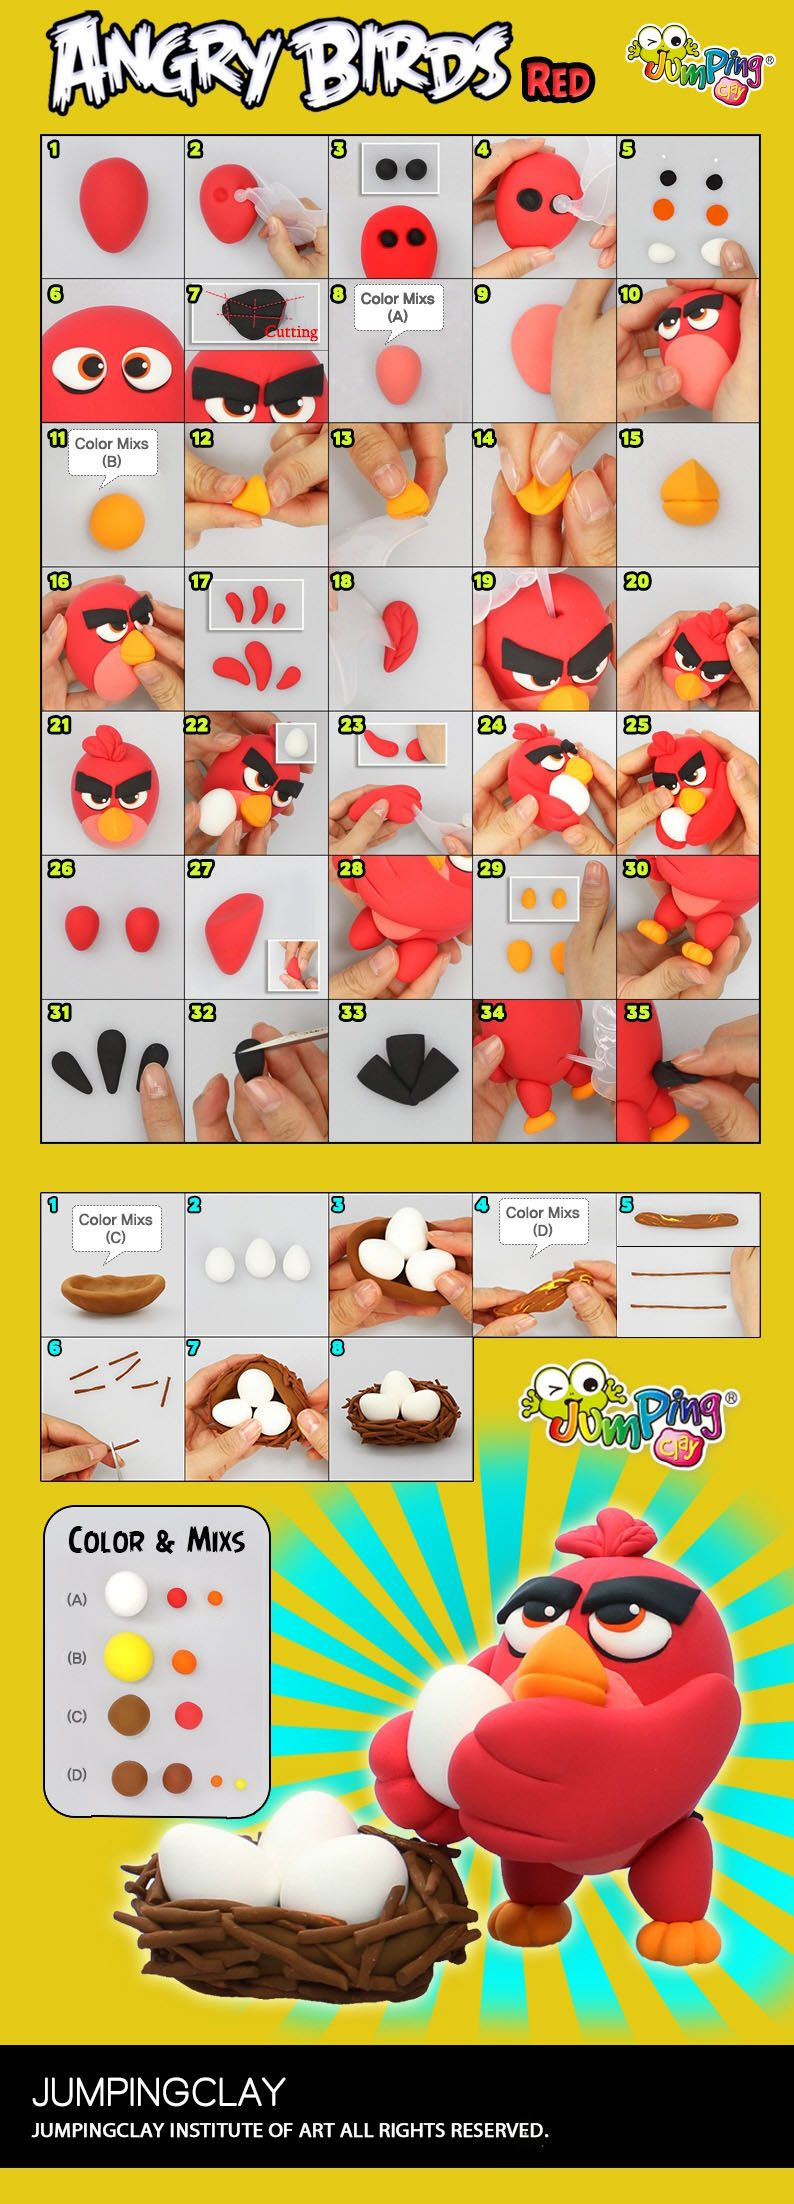 Kids Craft Project Ideas Part - 29: Create Your Own Angry Bird - Step By Step Kids Craft Project Ideas.